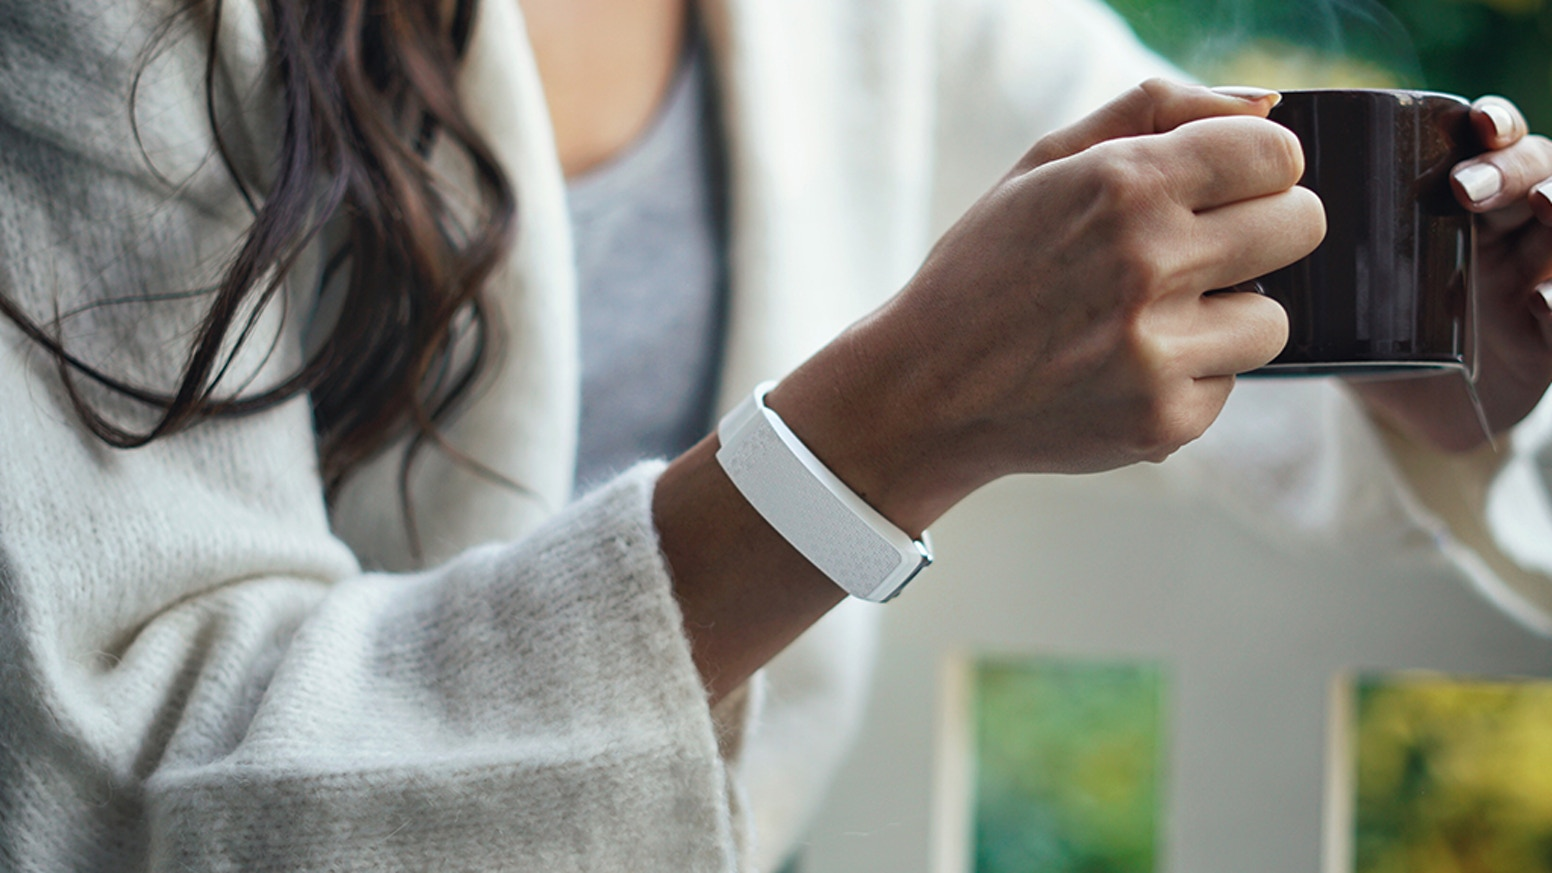 It's the first wearable that mimics a real human touch. A totally new way of communicating. Connecting loved ones wherever they are.